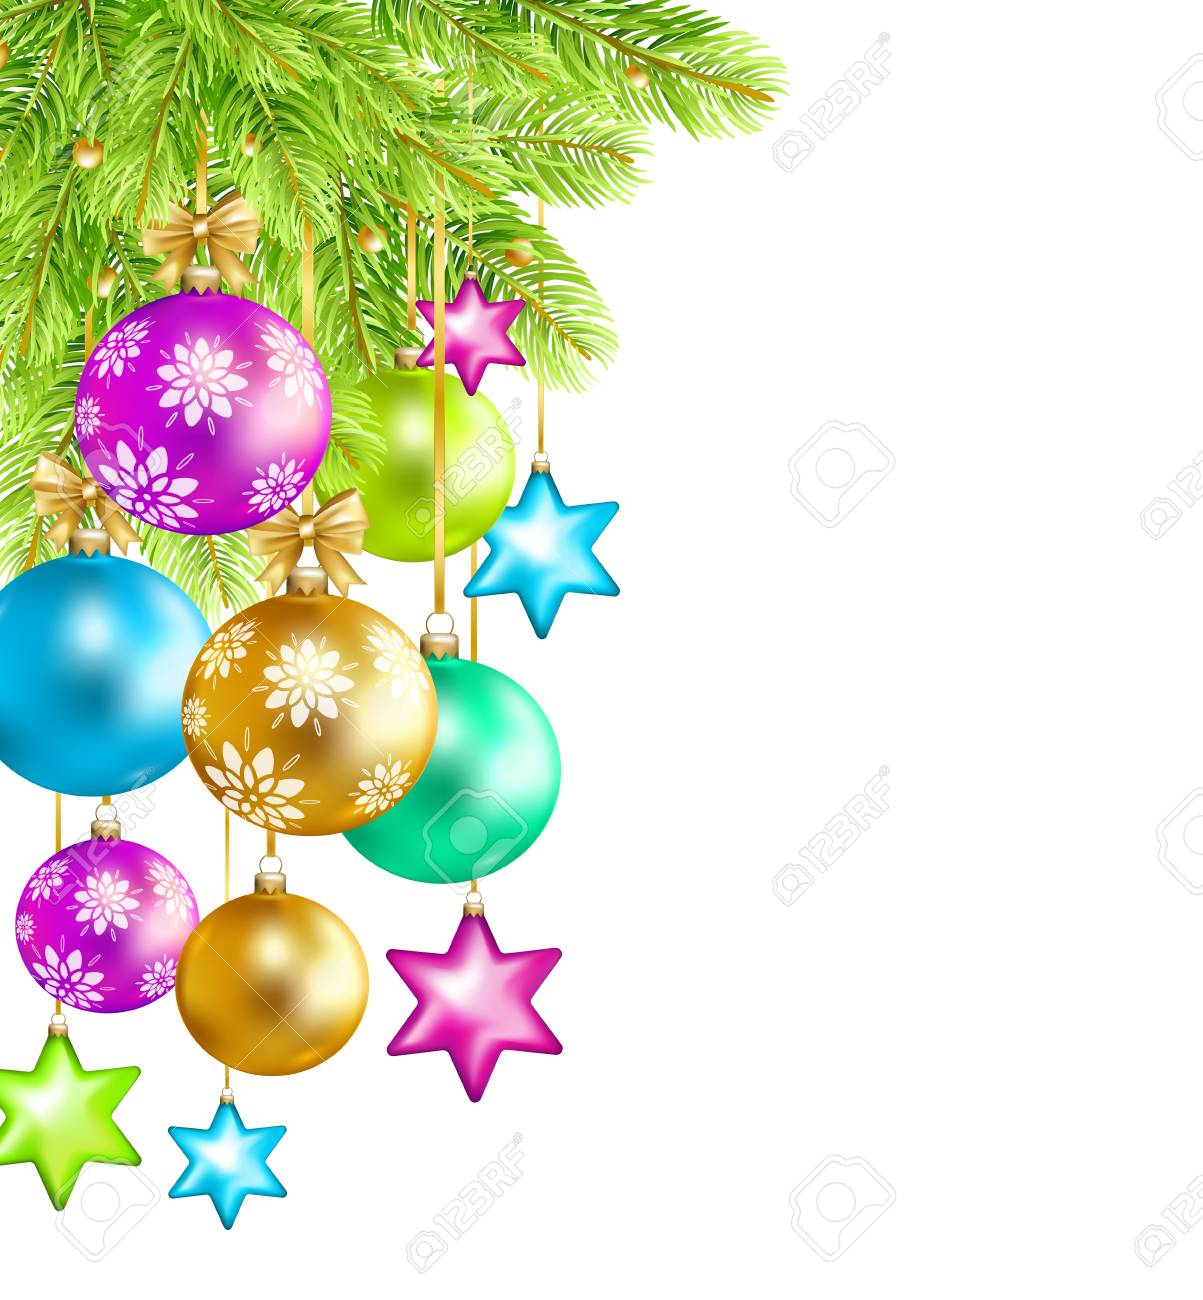 Colorful Christmas Background Design.Colorful Christmas Balls Stars Serpentine And Fir Tree Isolated